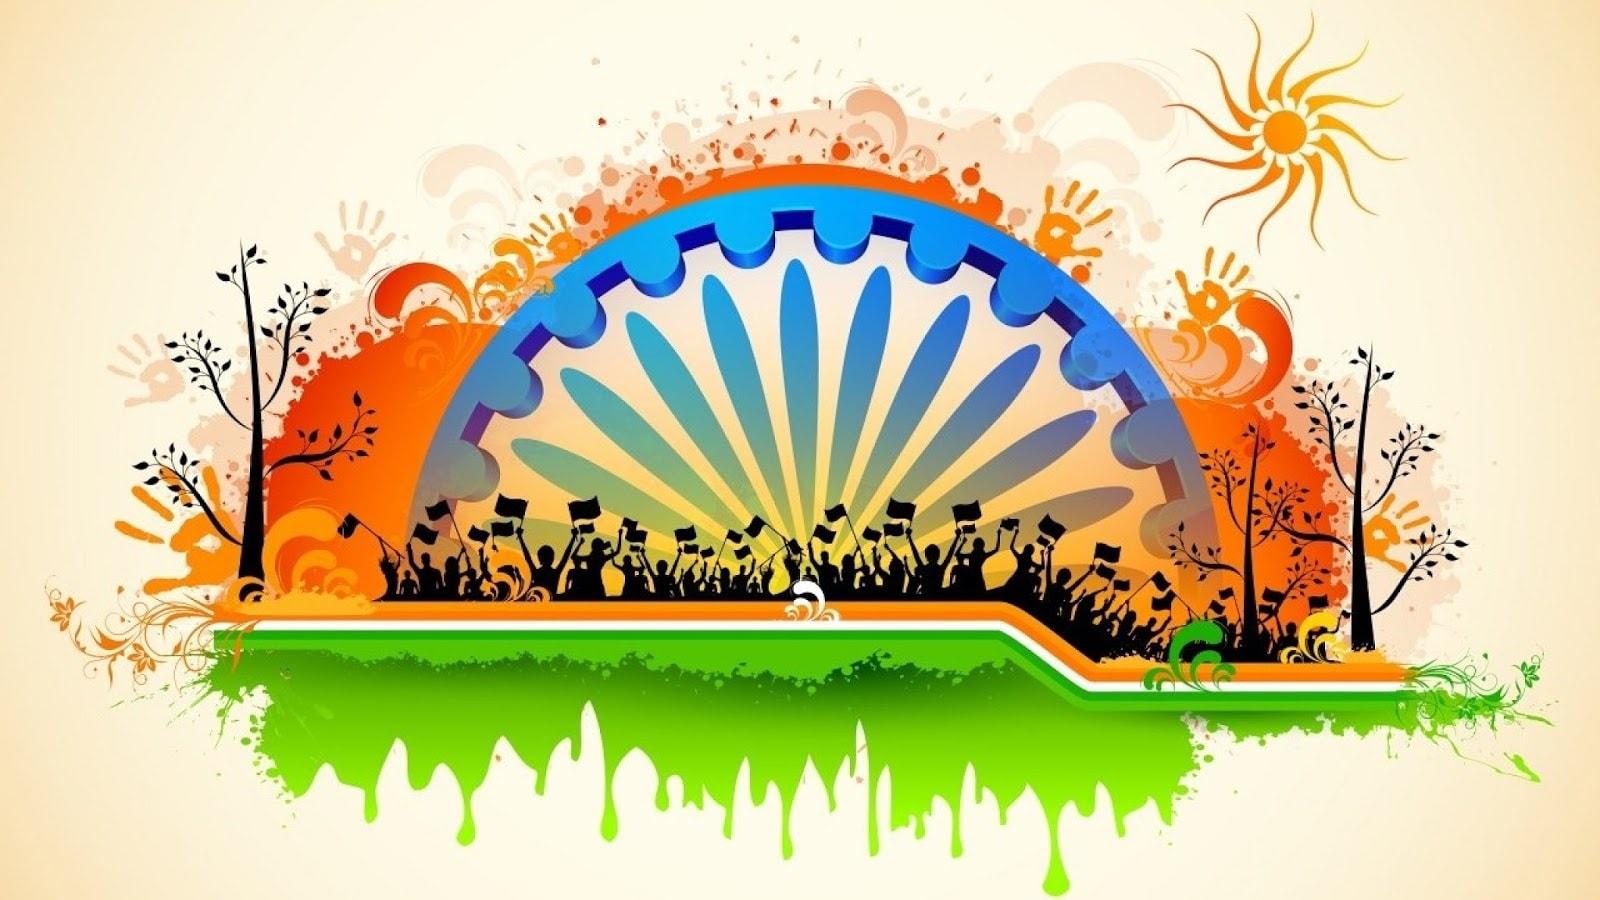 Republic day inspirational Quotes in Hindi 2018